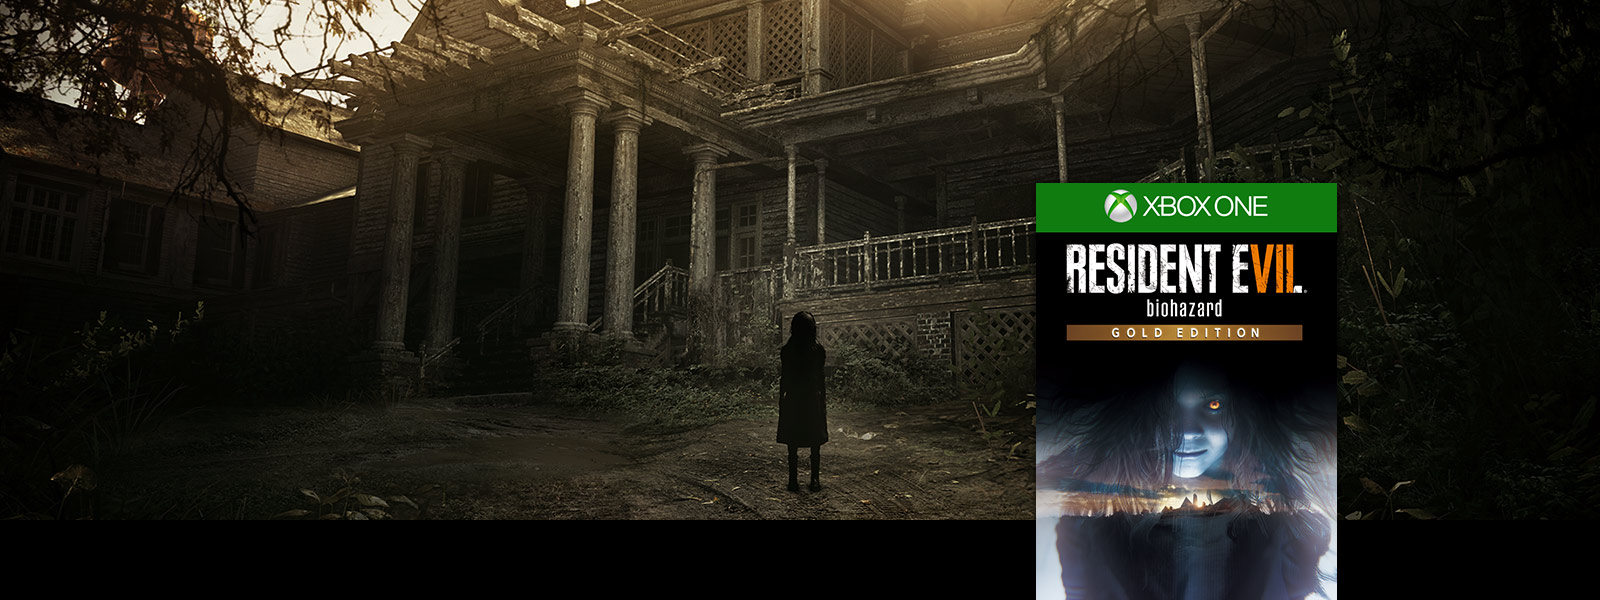 Resident Evil 7 biohazard gold edition box shot over scene of spooky girl standing in front of haunted house